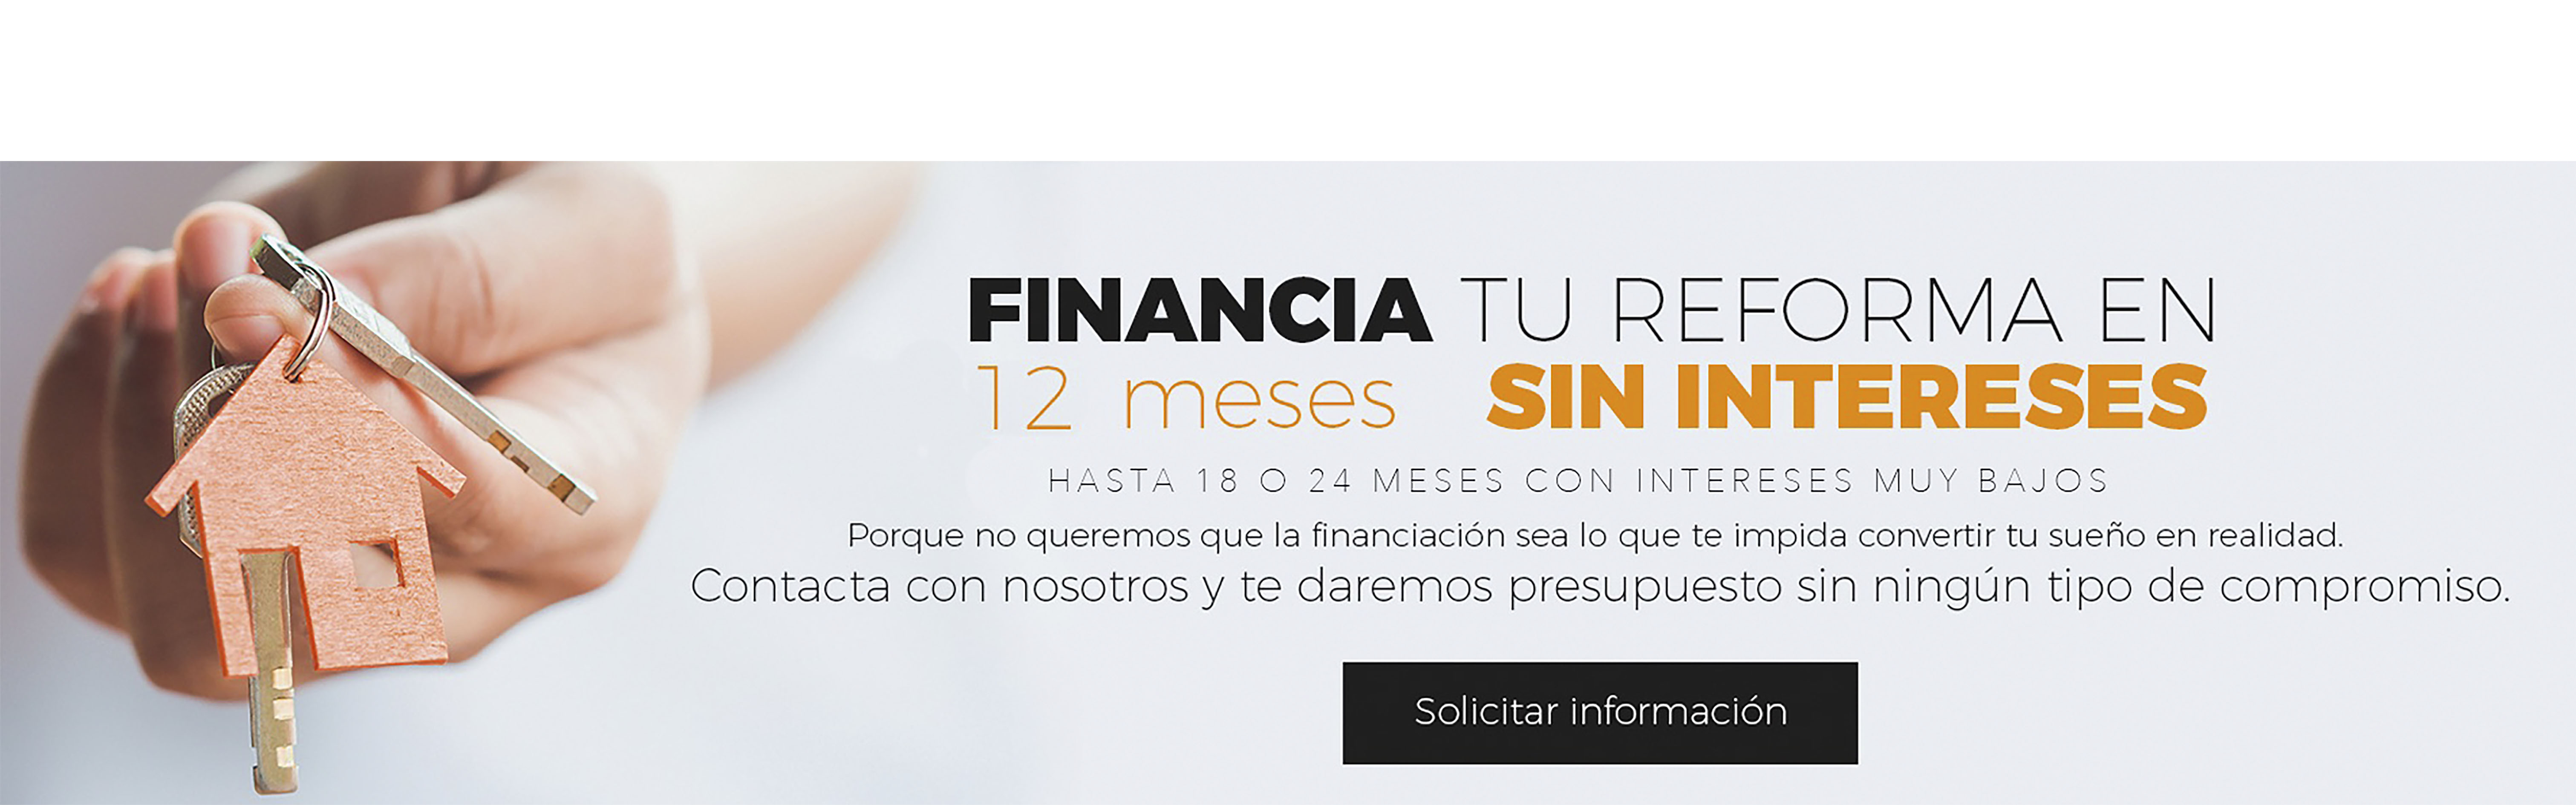 financiación reforser